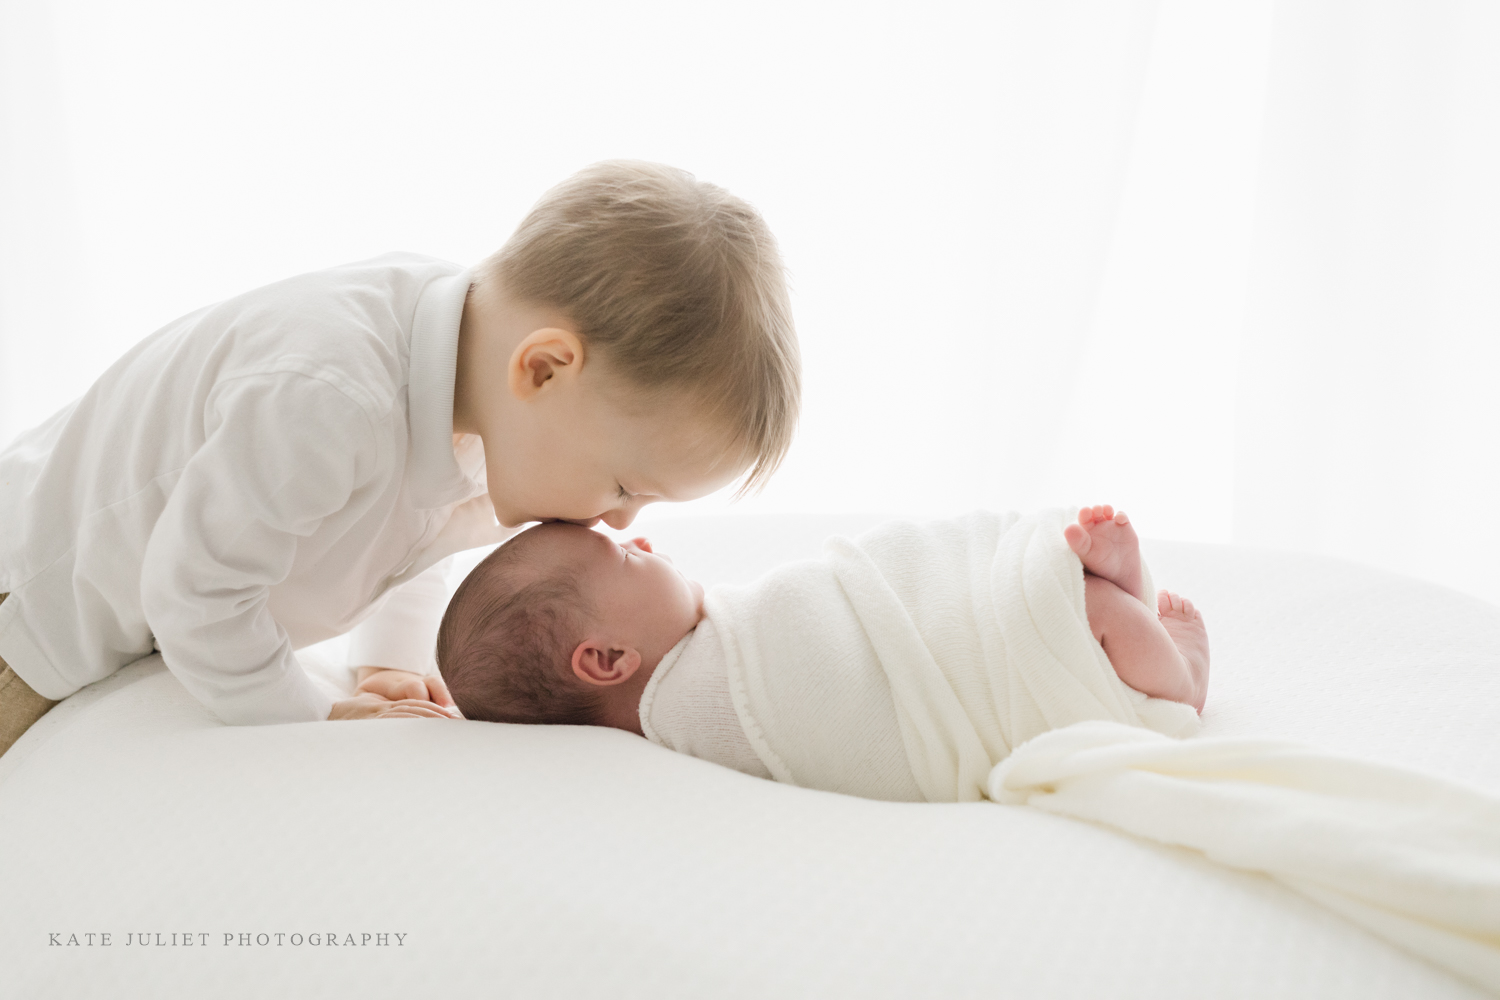 kate-juliet-photography-newborn-web--79.jpg